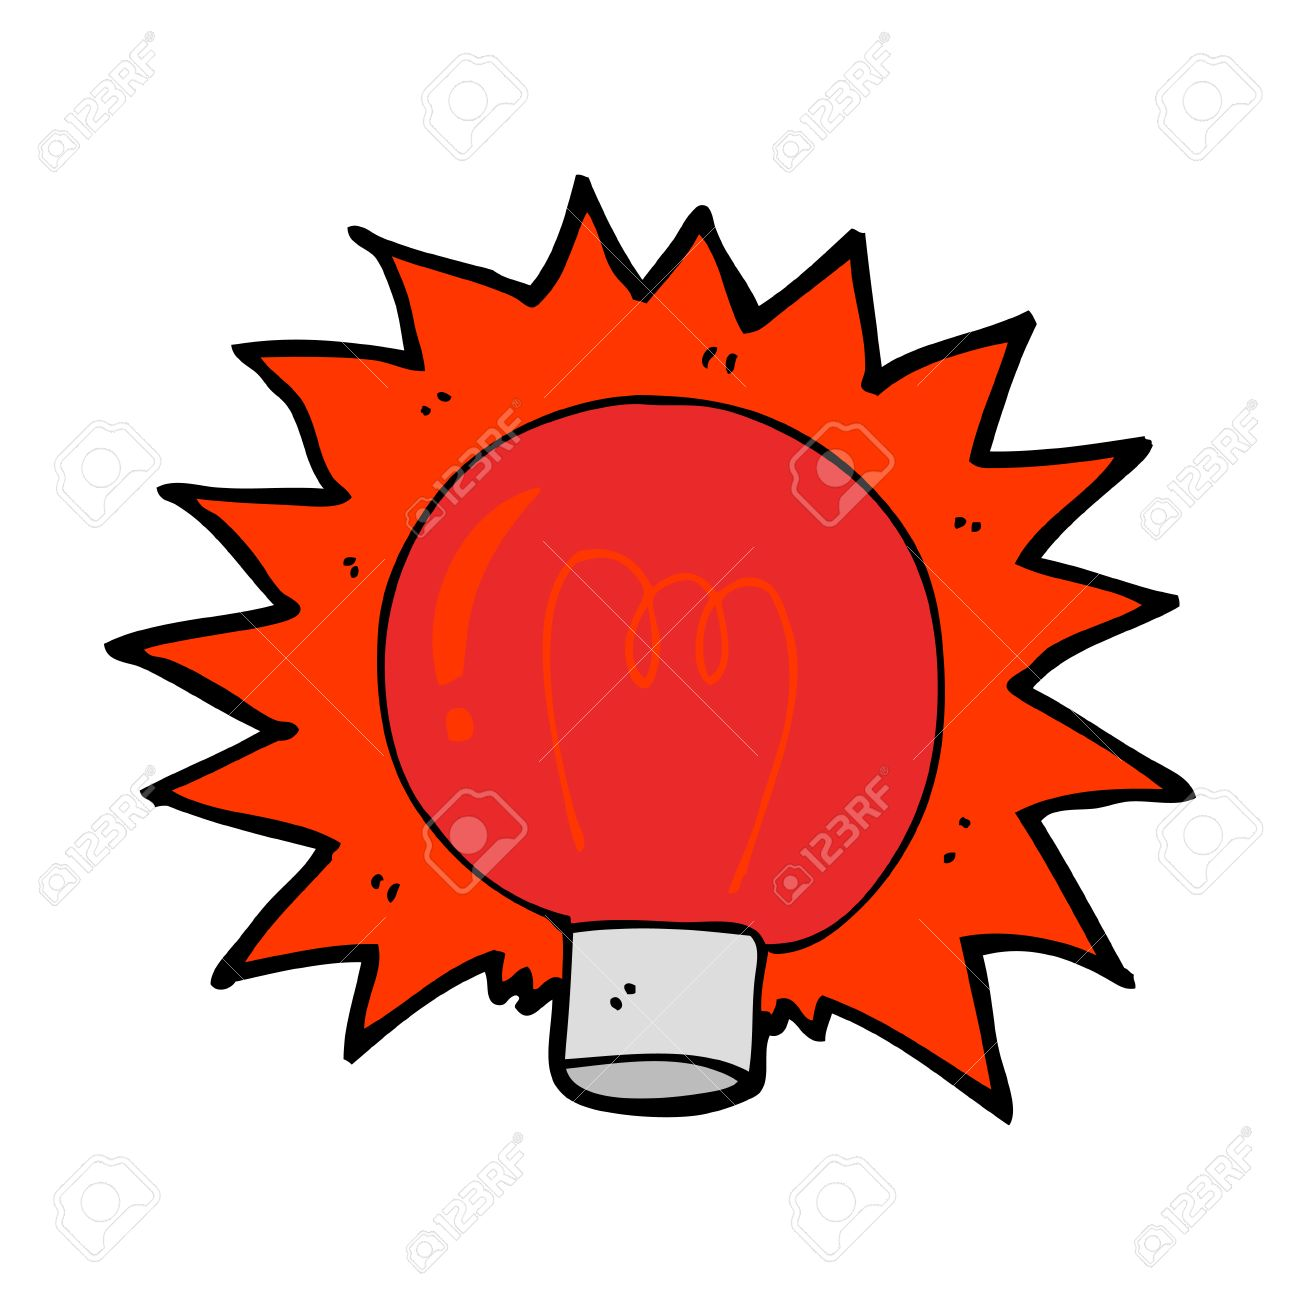 Cartoon Flashing Red Light Bulb Royalty Free Cliparts, Vectors ...